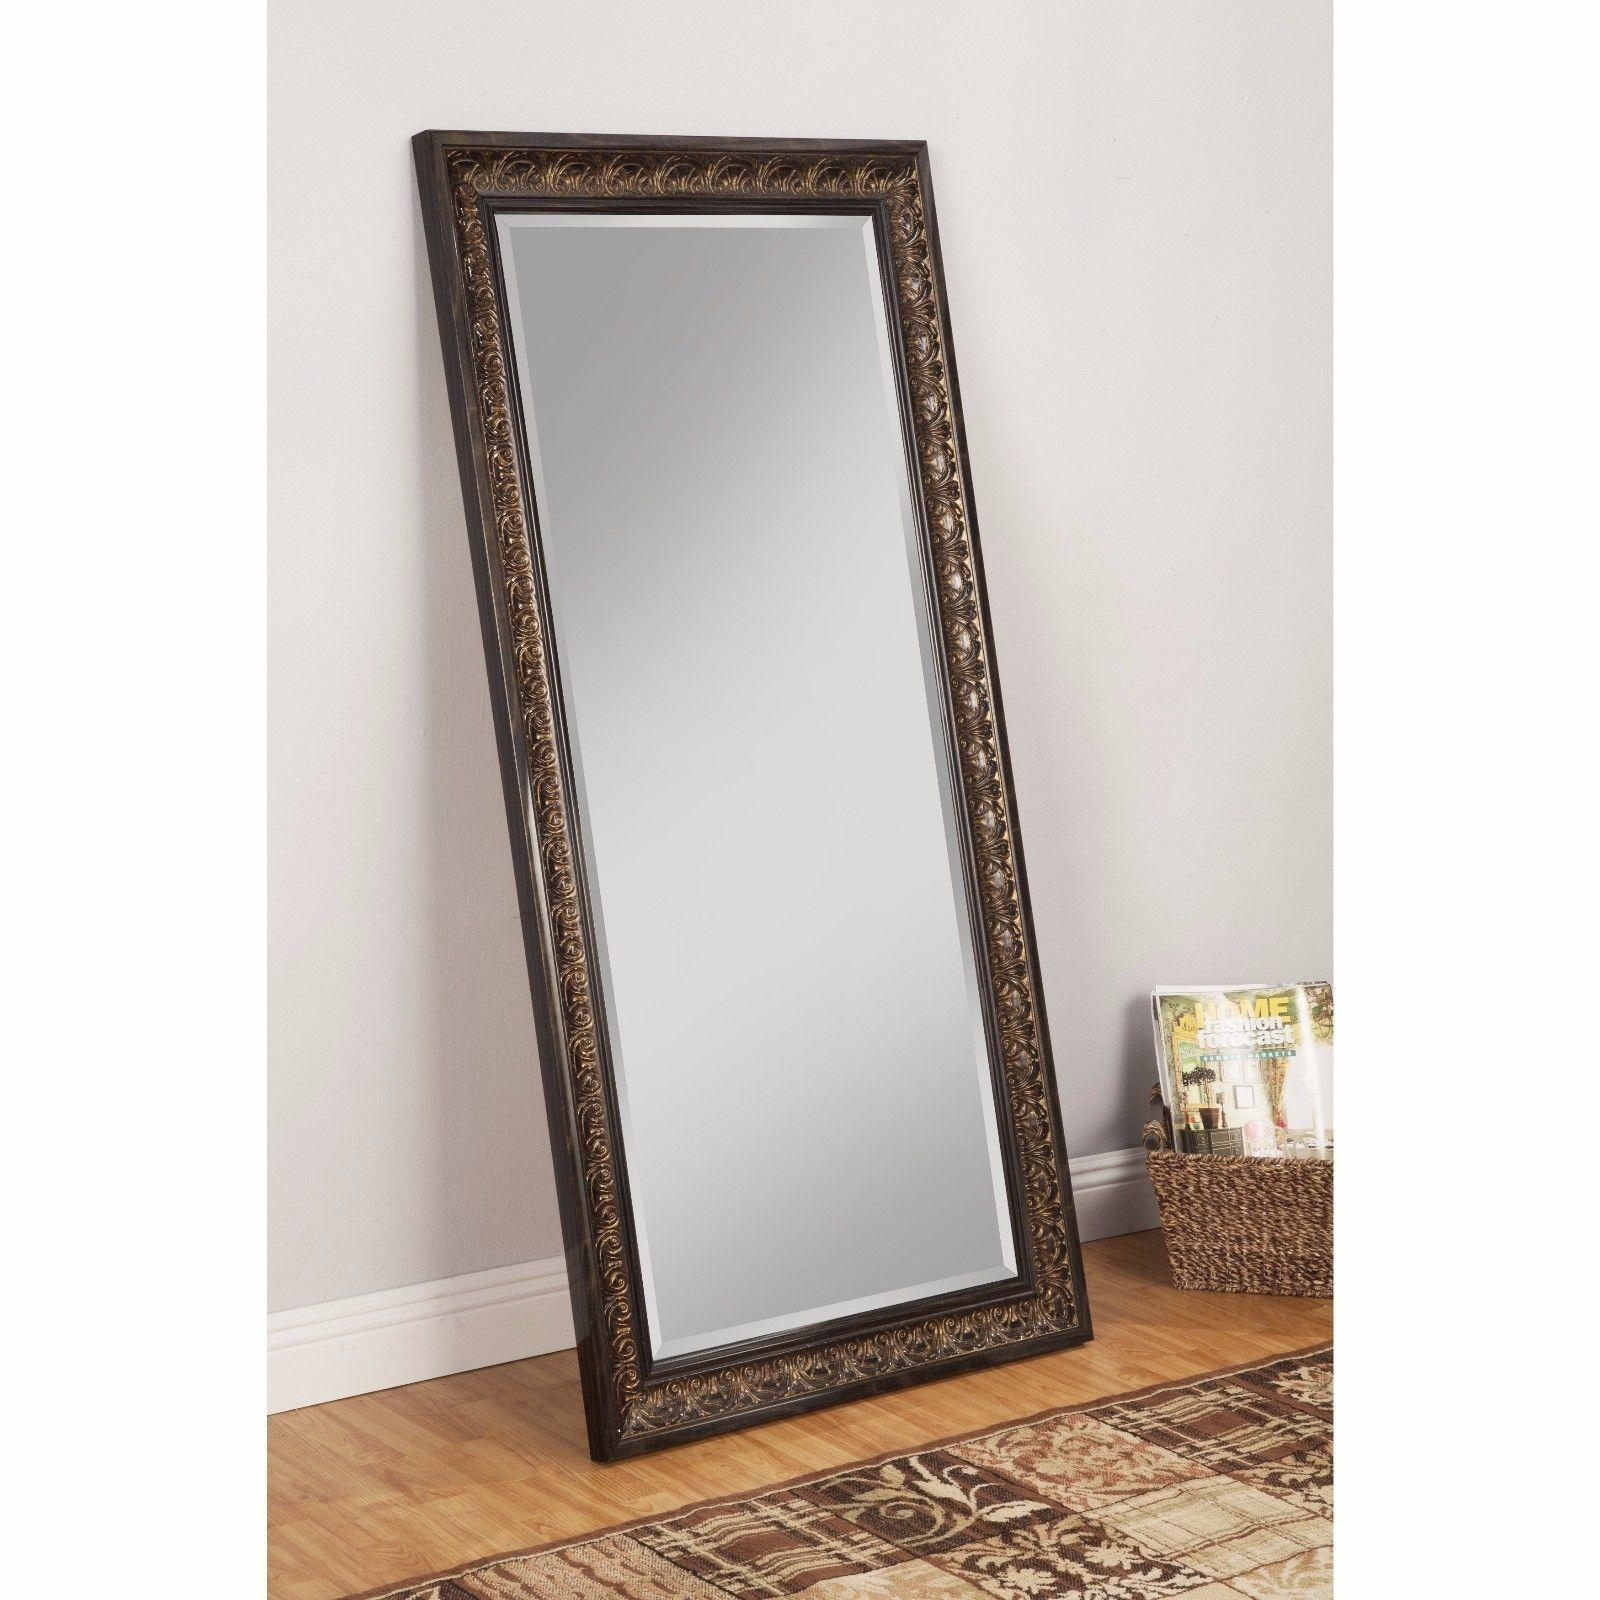 Free Standing Mirror Cheval Floor Full Length Leaning Big Long Regarding Long Dressing Mirror (View 2 of 20)